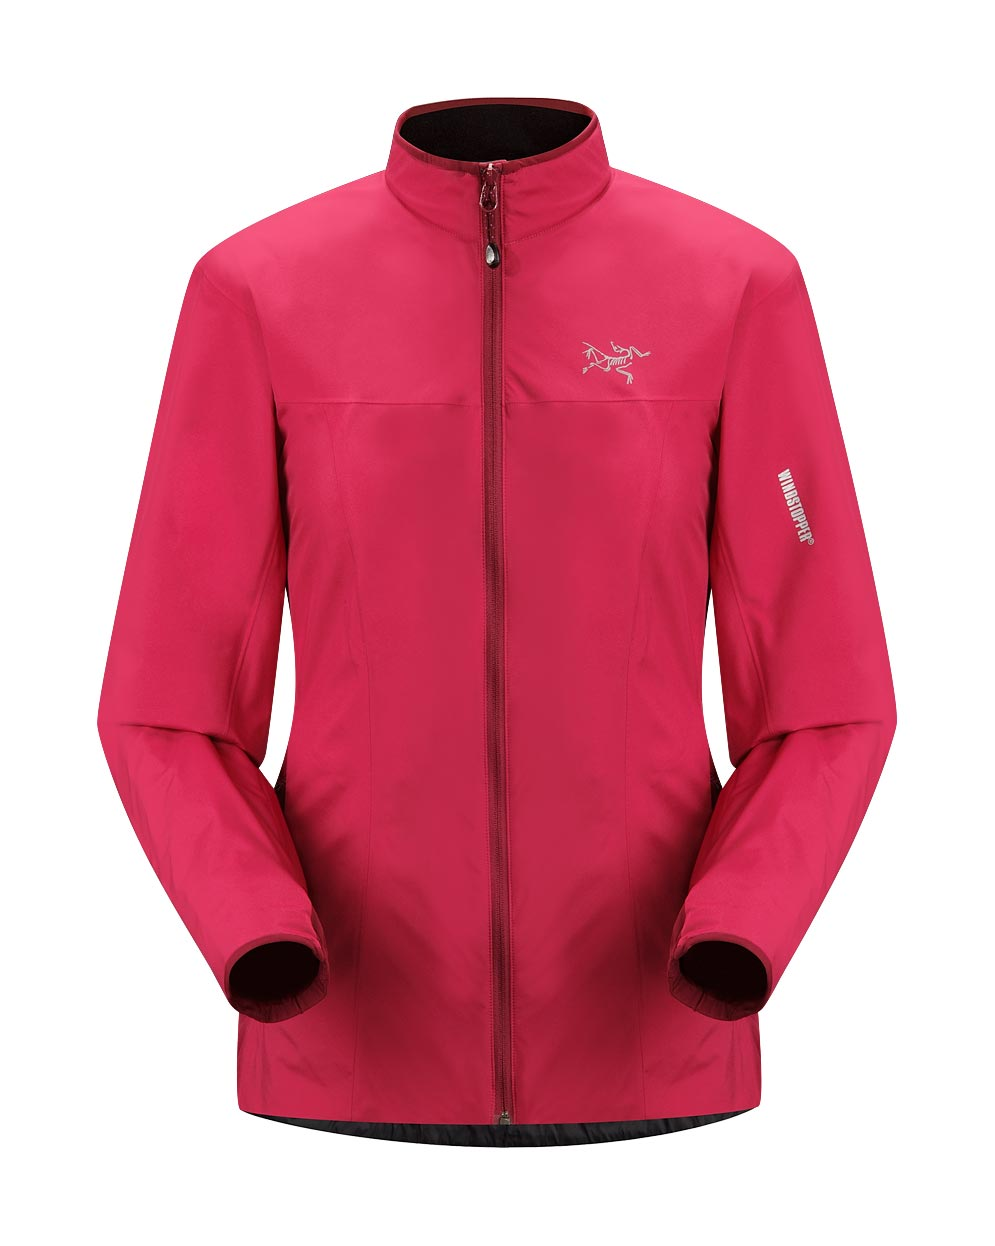 Arcteryx Jackets Women Cassis Rose Solano Jacket